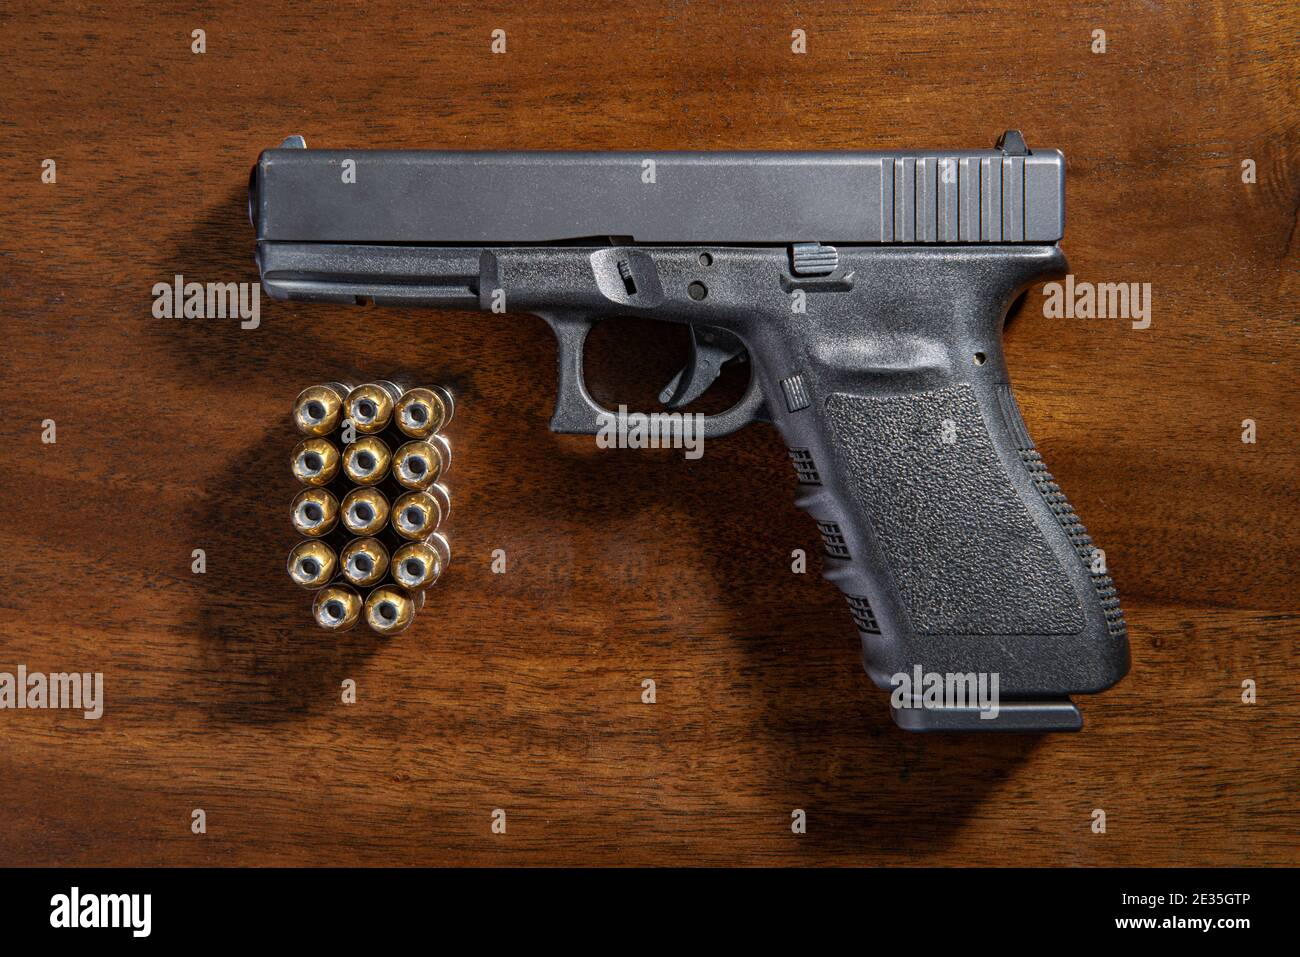 A black semi-automatic pistol and ammunition on a wooden table. Stock Photo